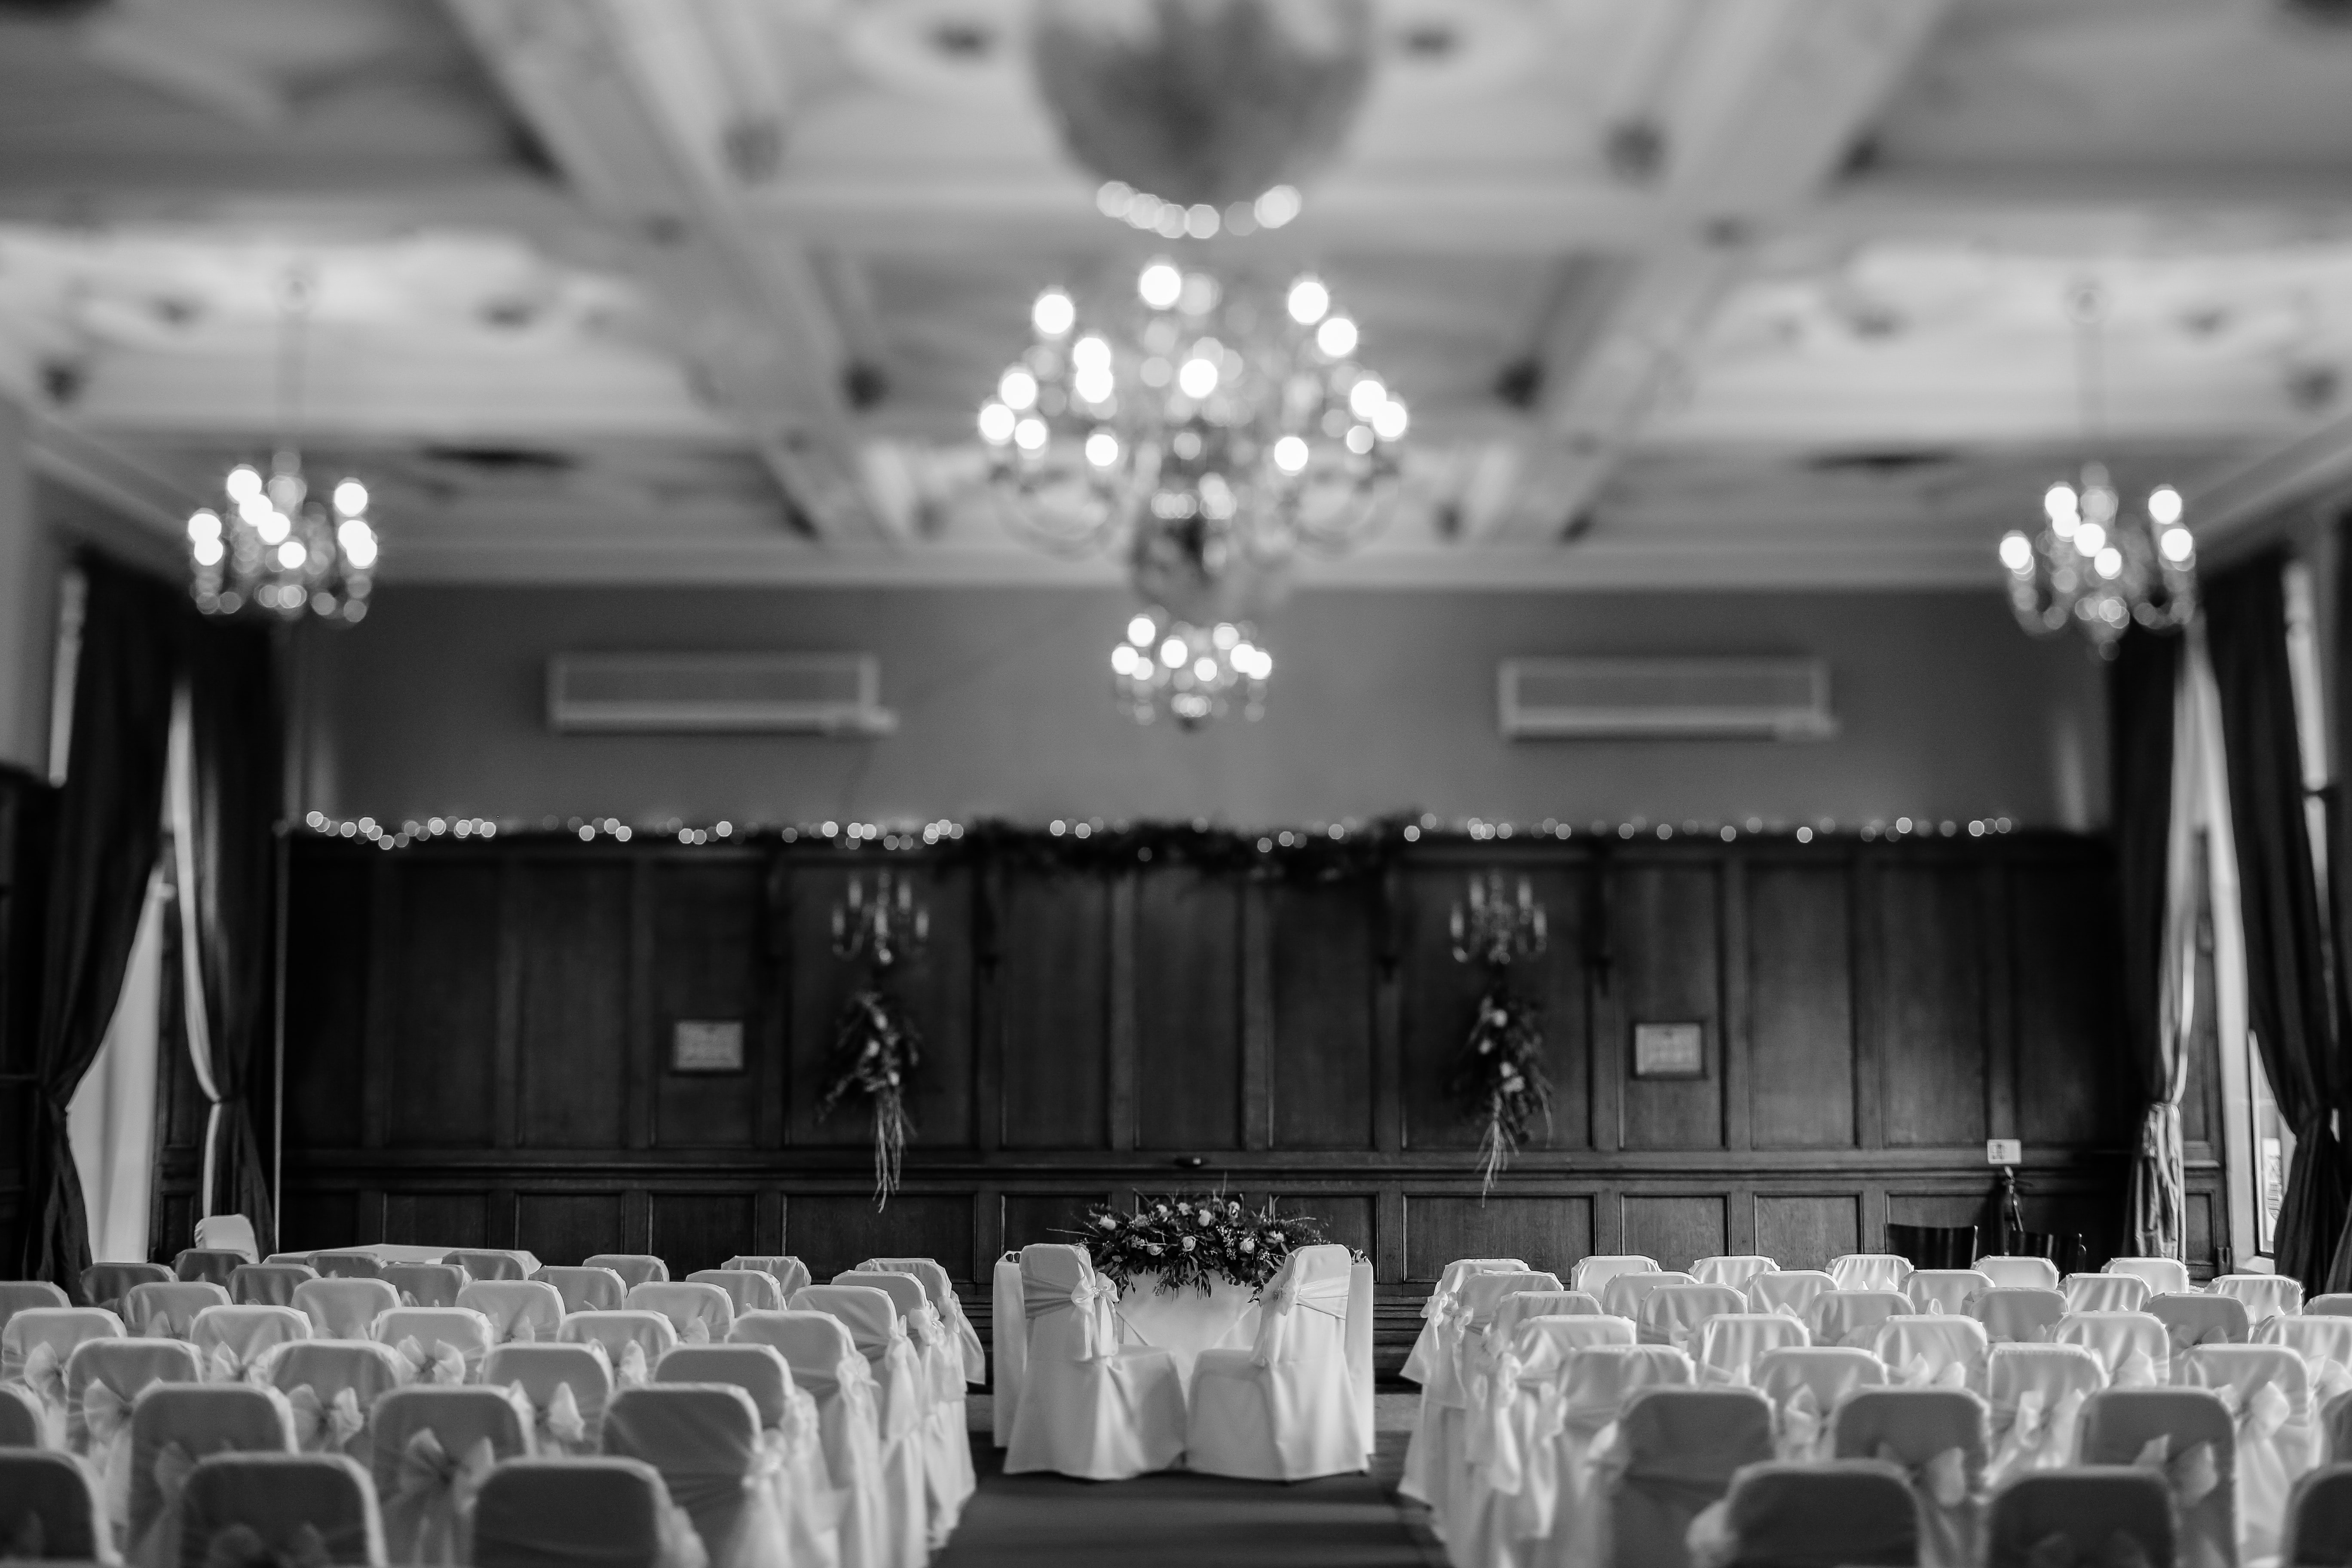 wedding ceremony setup in grayscale photo